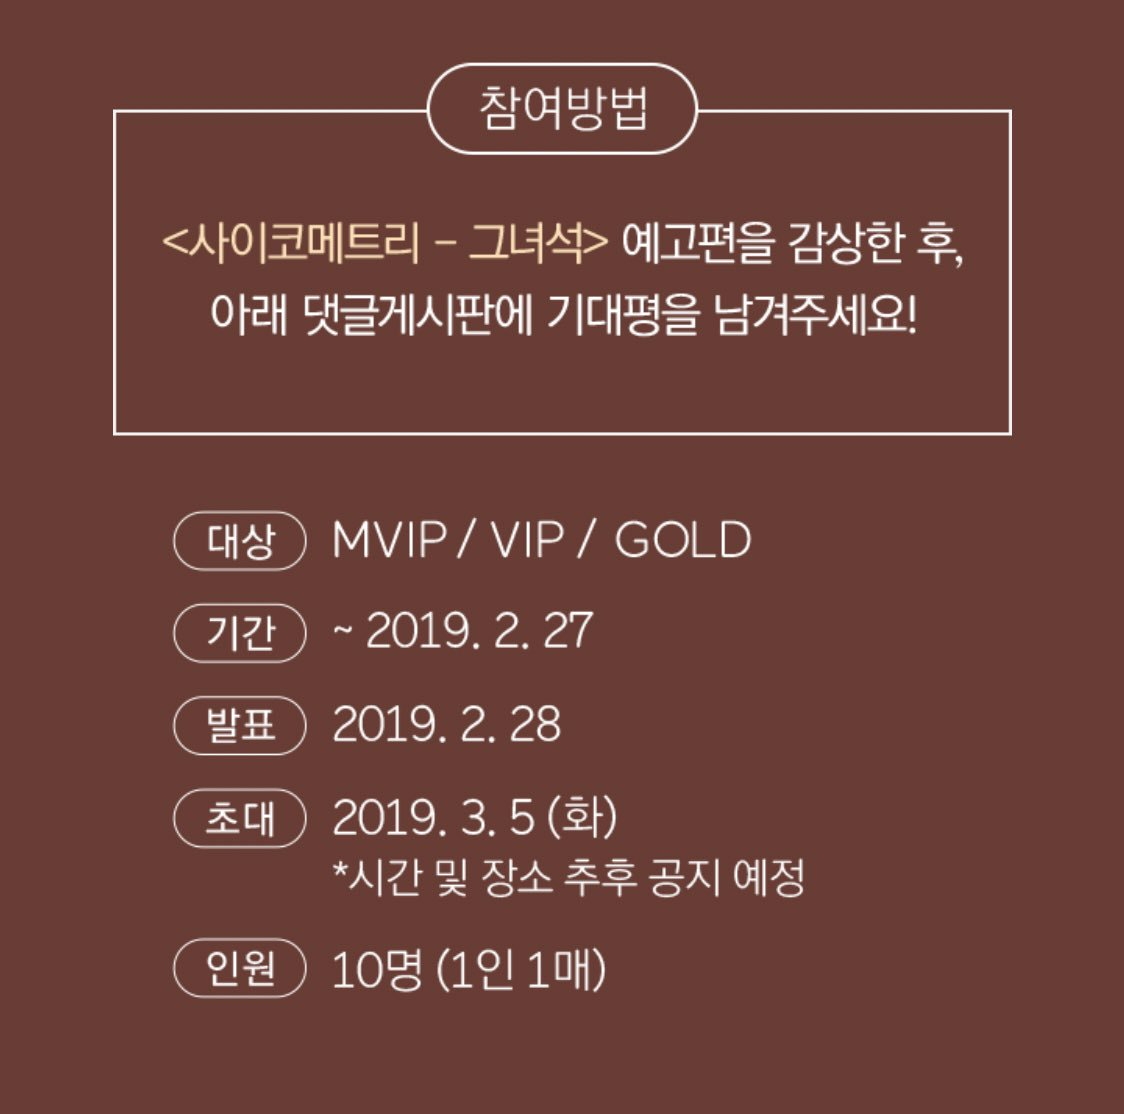 &lt;He is Psychometric&gt;&#39;s press conference will be held on March 5th! #GOT7 #Jinyoung<br>http://pic.twitter.com/HGjOpqQEie